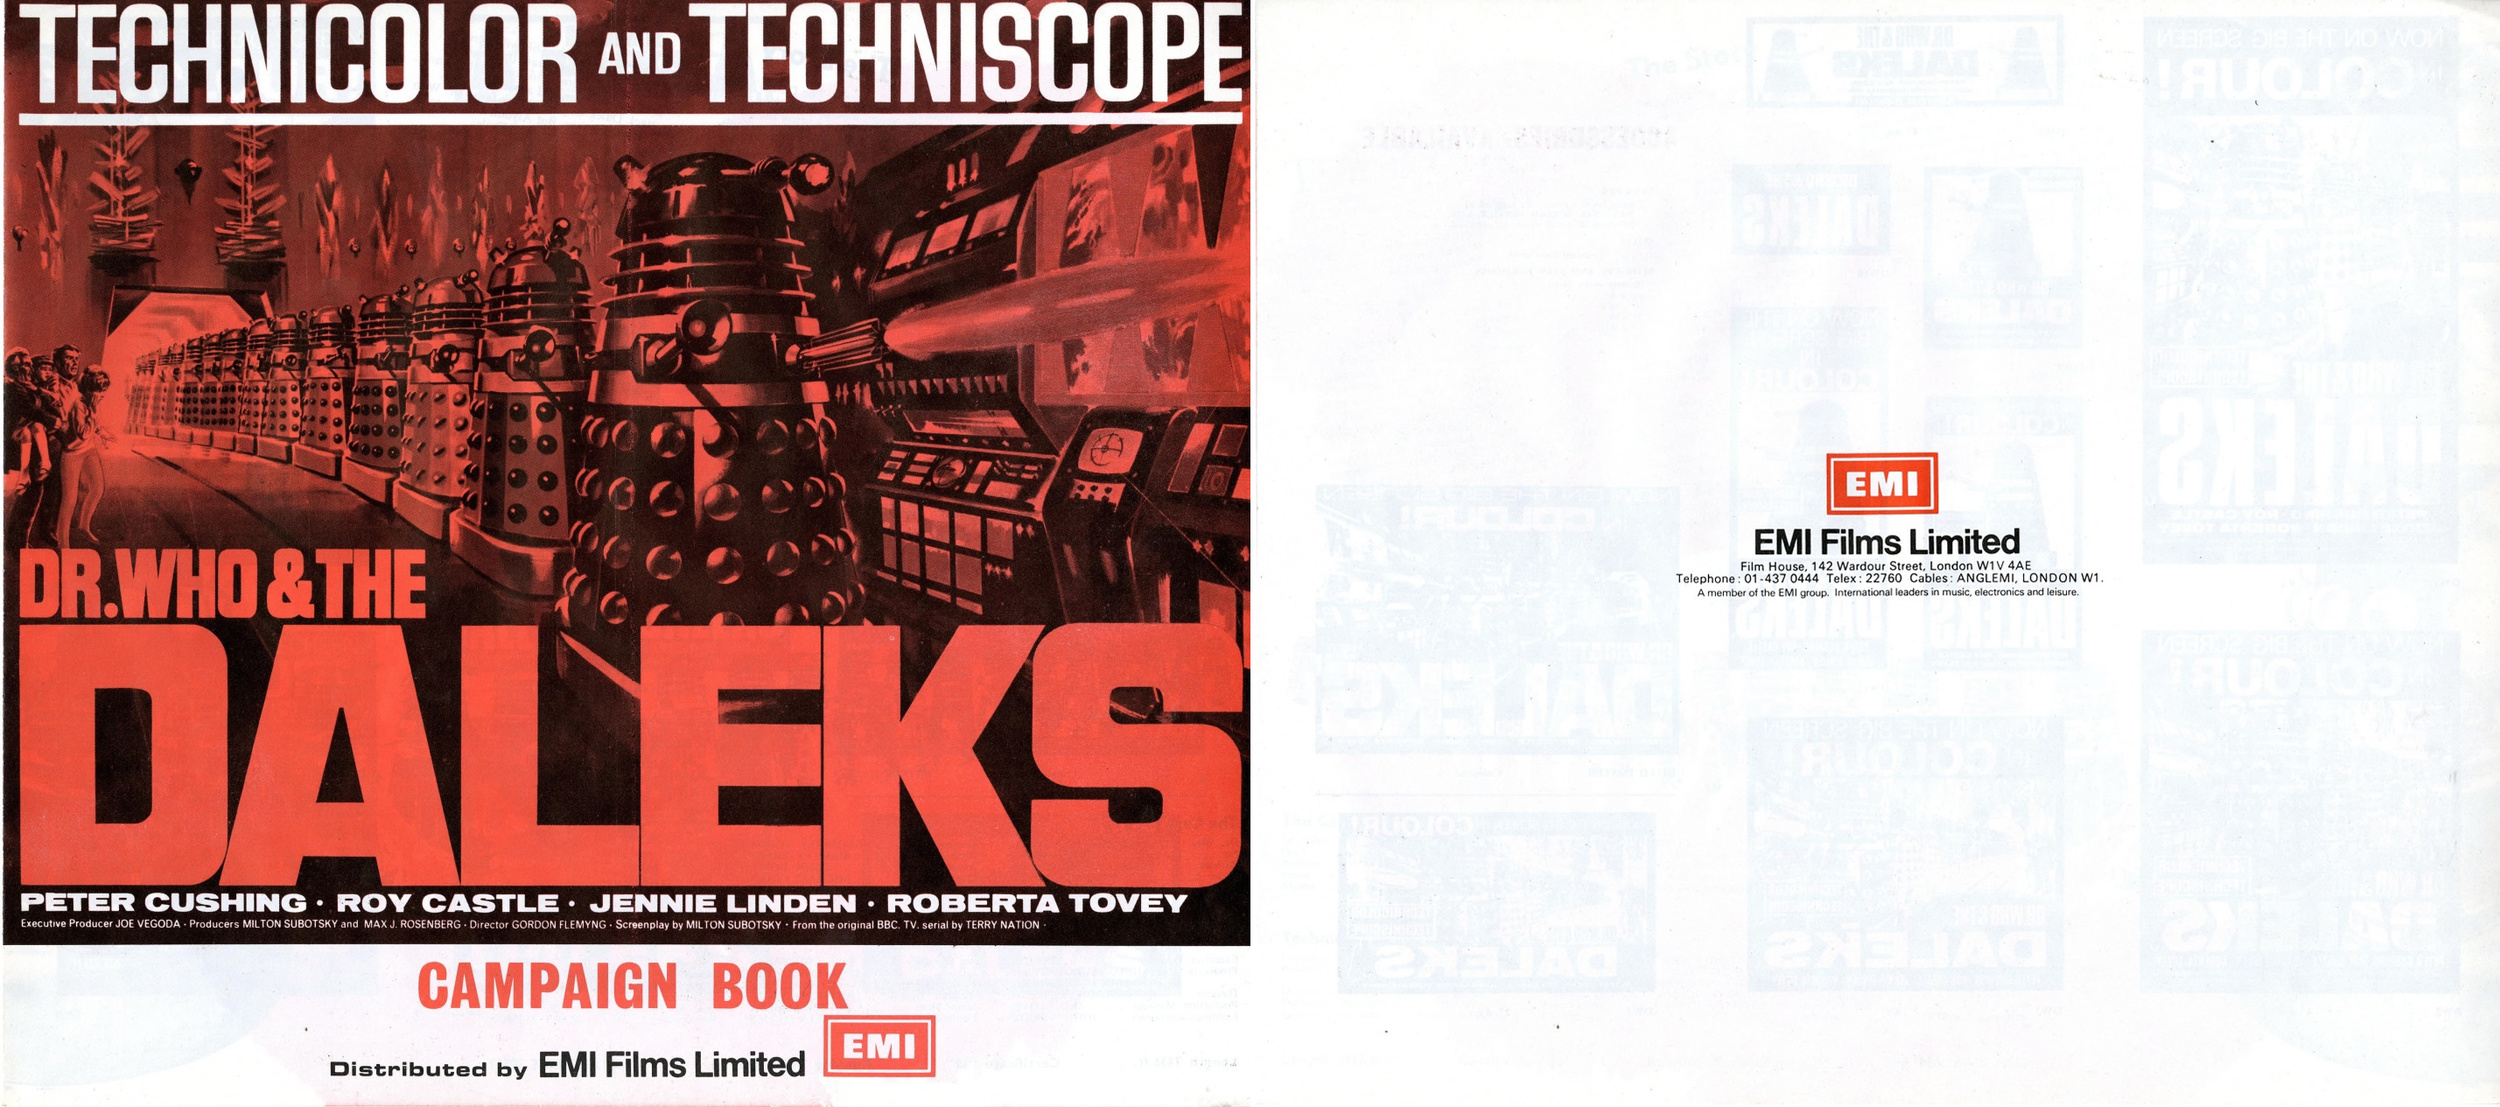 Dr. Who and the Daleks, EMI Films Ltd., Campaign Book (front and back covers)